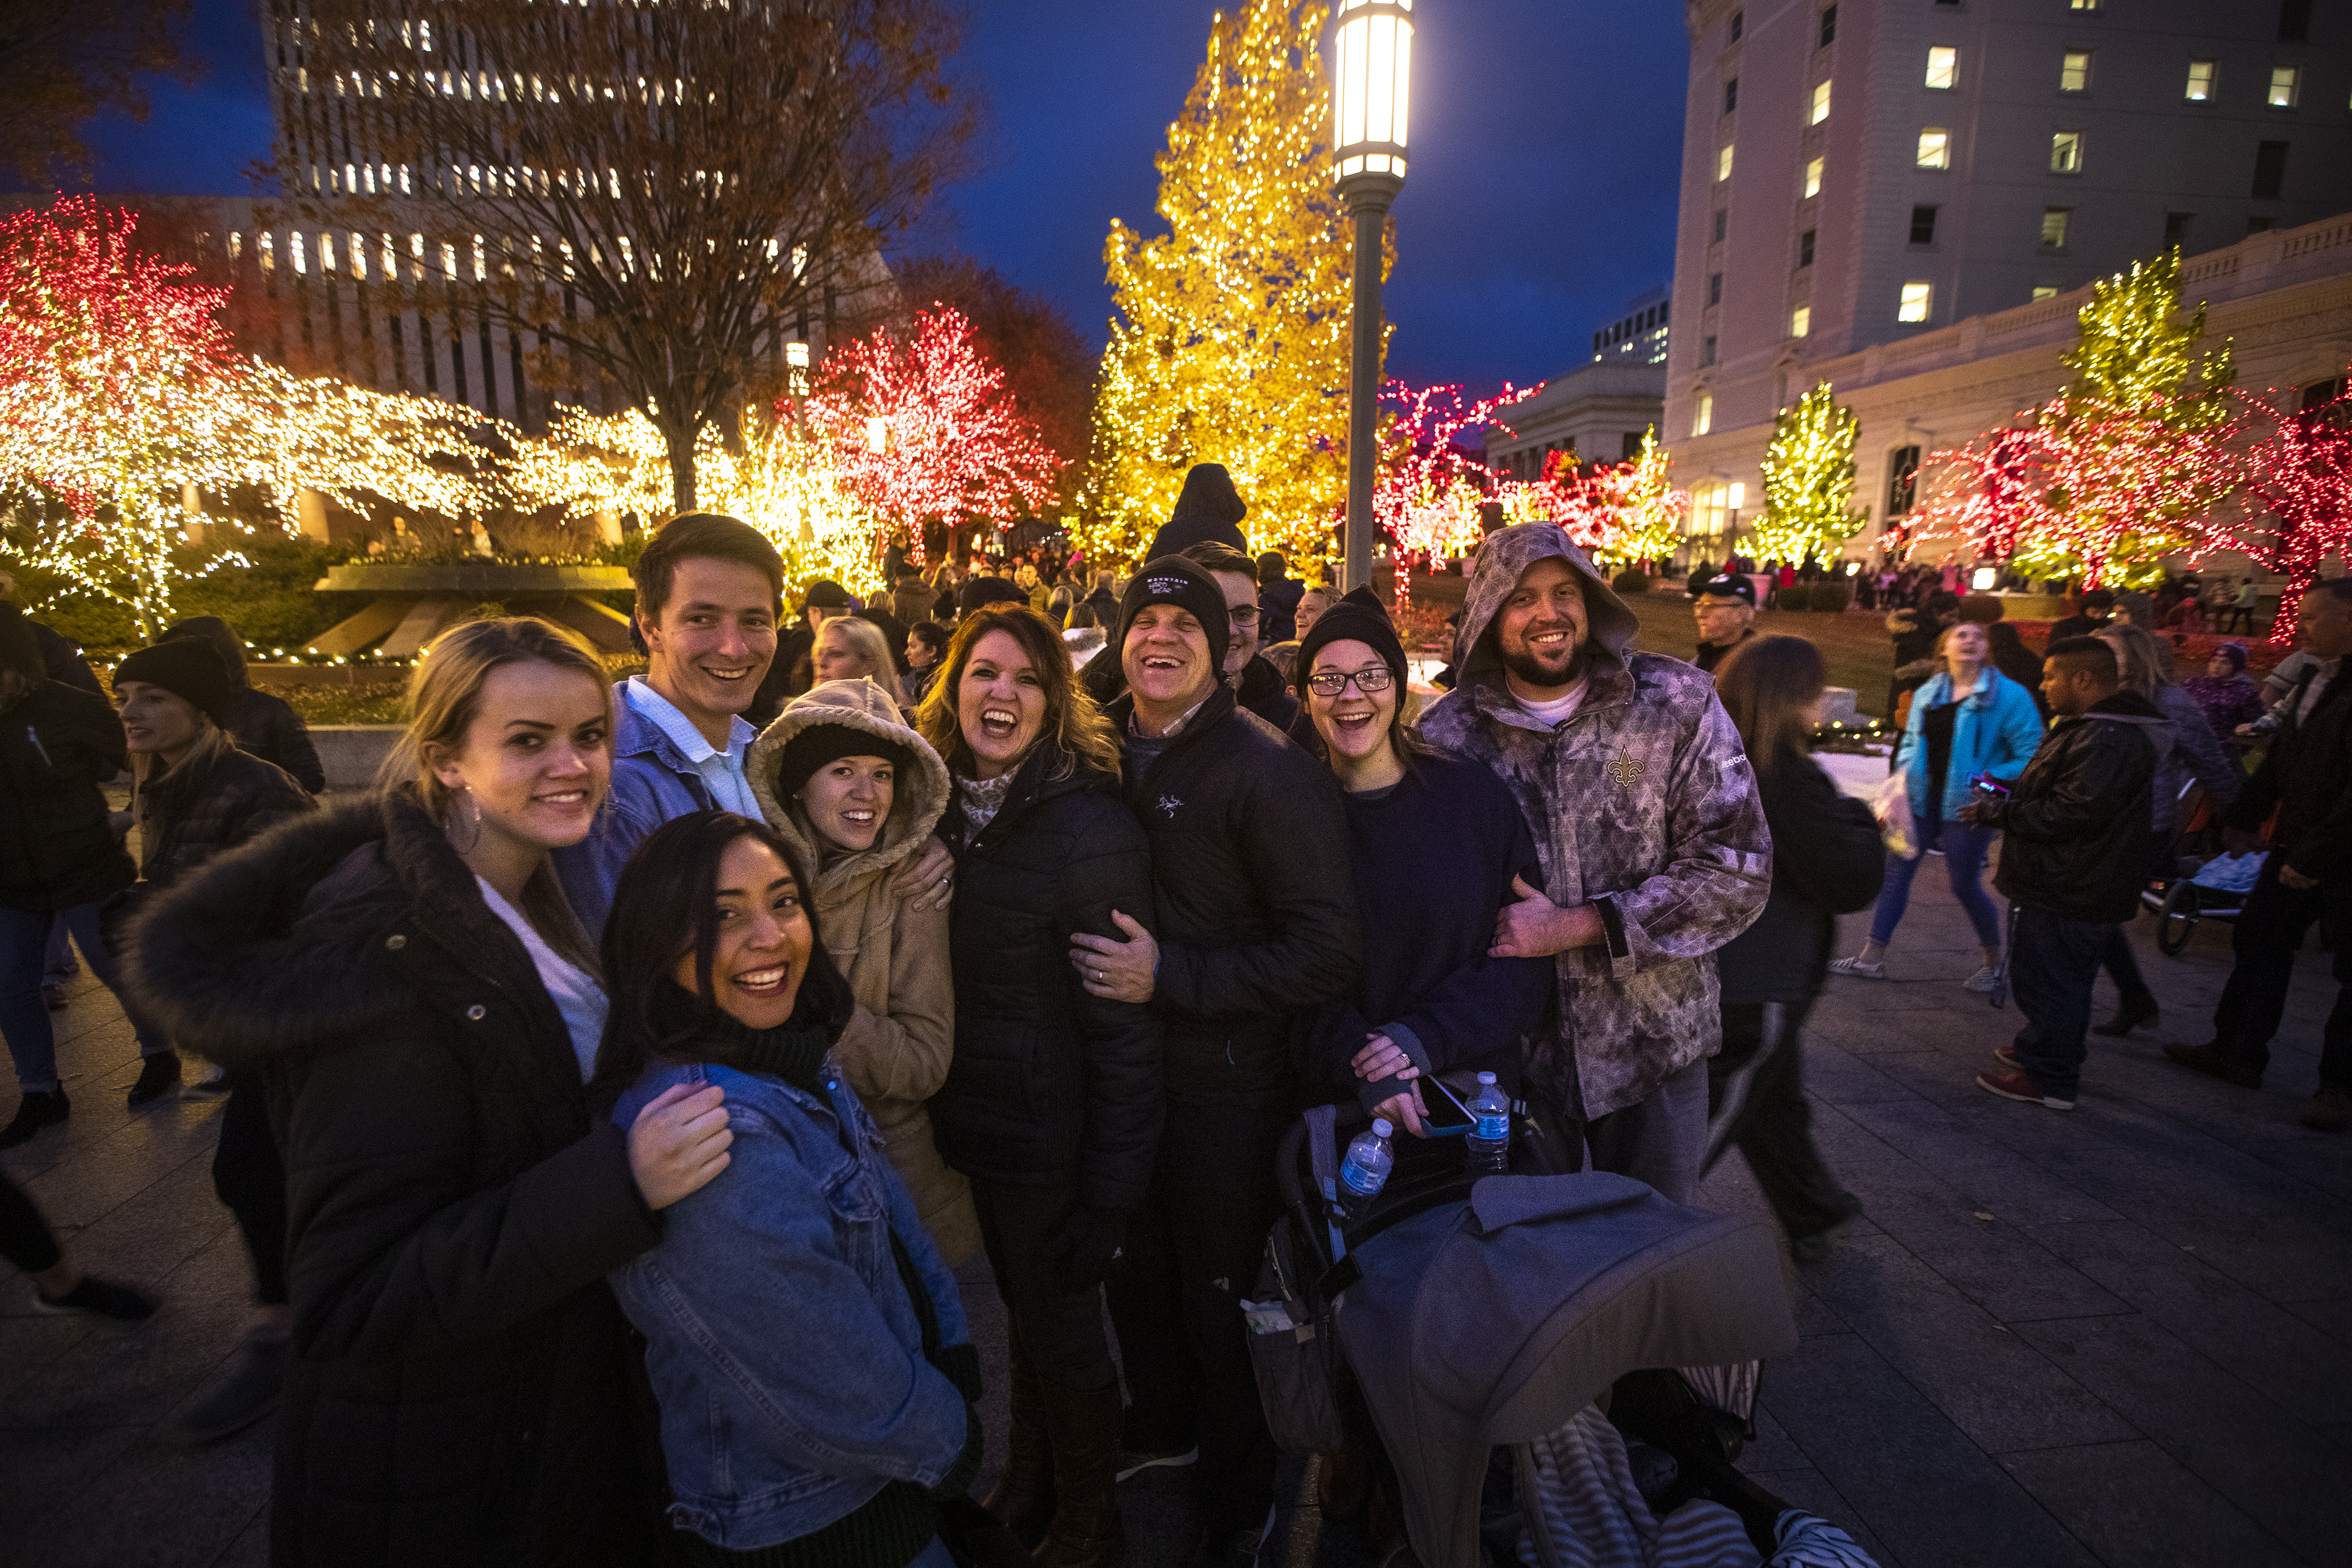 The Whipple family, from Houston Texas, laugh as they pose for a photo with the lights around them at Temple Square in Salt Lake City on Friday, Nov. 23, 2018.